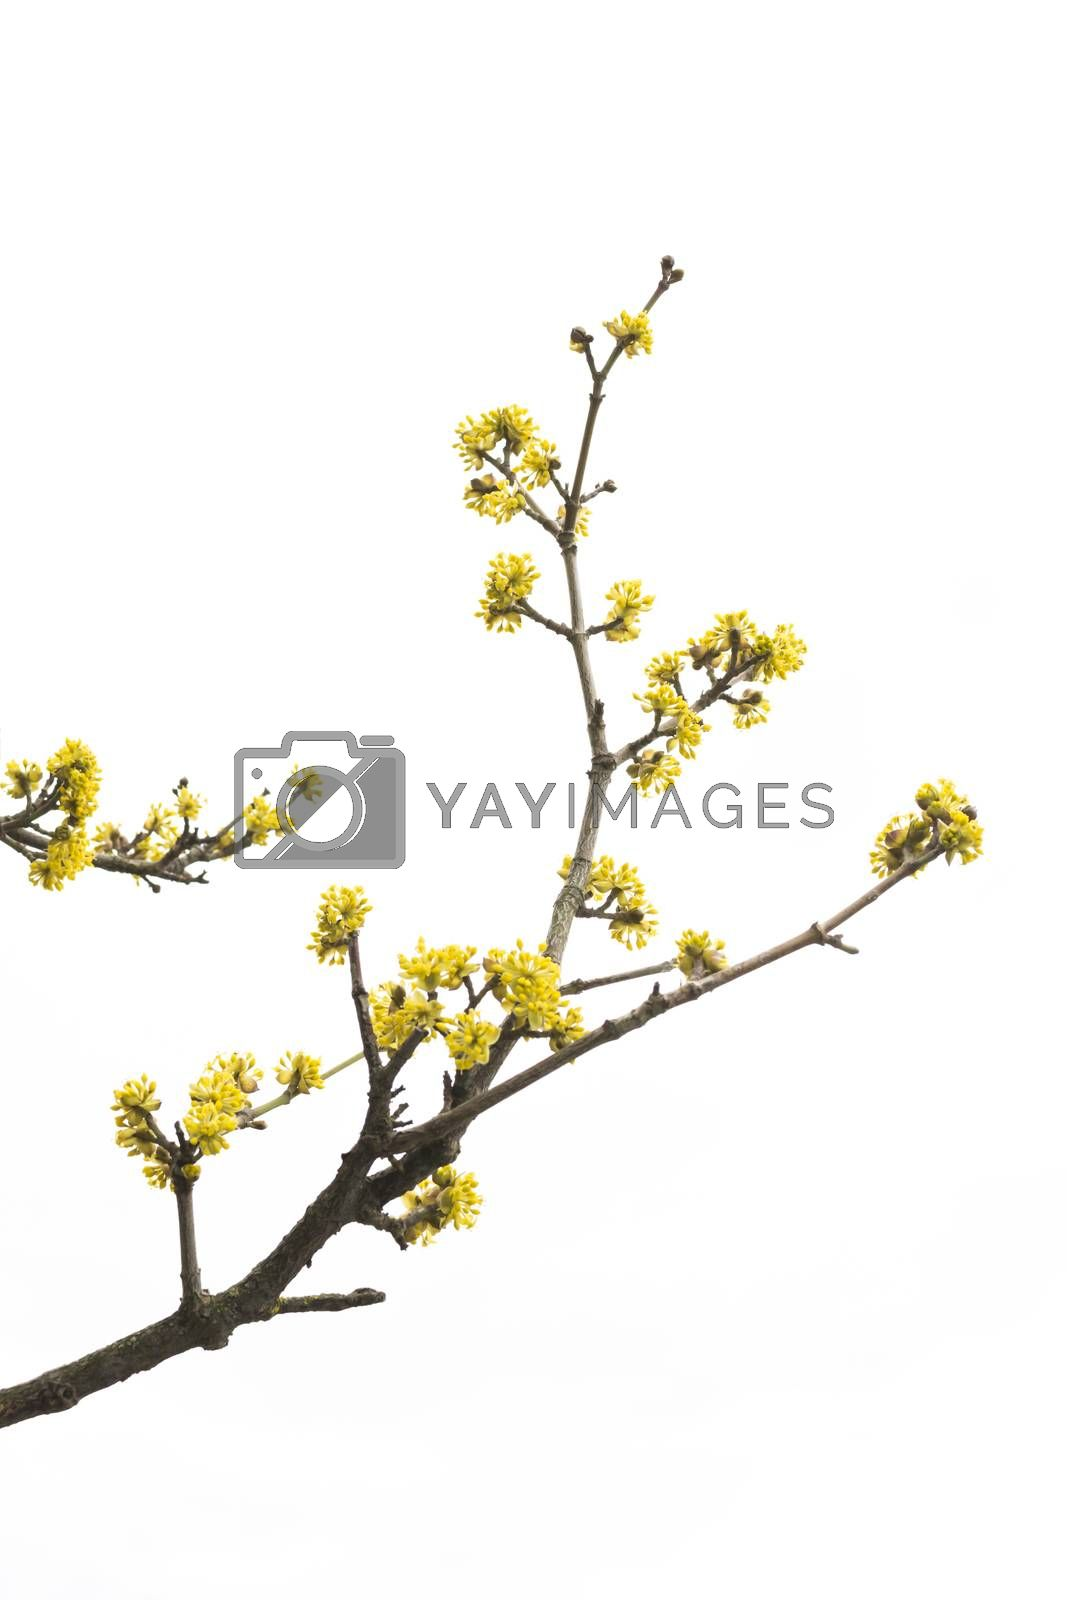 Royalty free image of Spring tree detail by ArtesiaWells